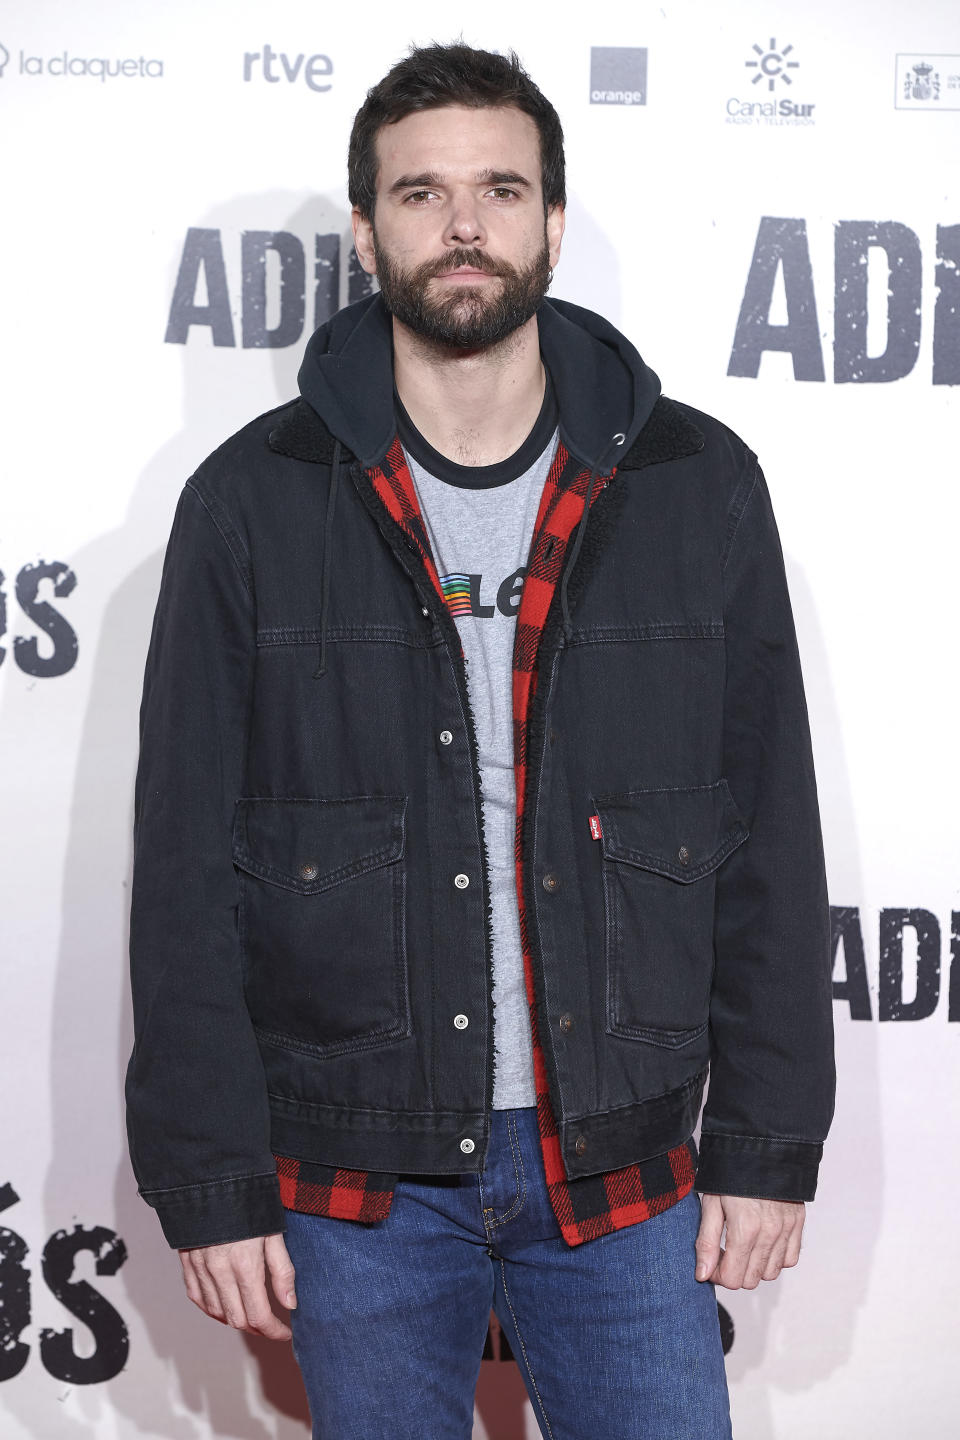 Jon Arias attends the 'Adios' premiere at 'Capitol' cinema in Madrid, Spain on Nov 19, 2019 (Photo by Carlos Dafonte/NurPhoto via Getty Images)